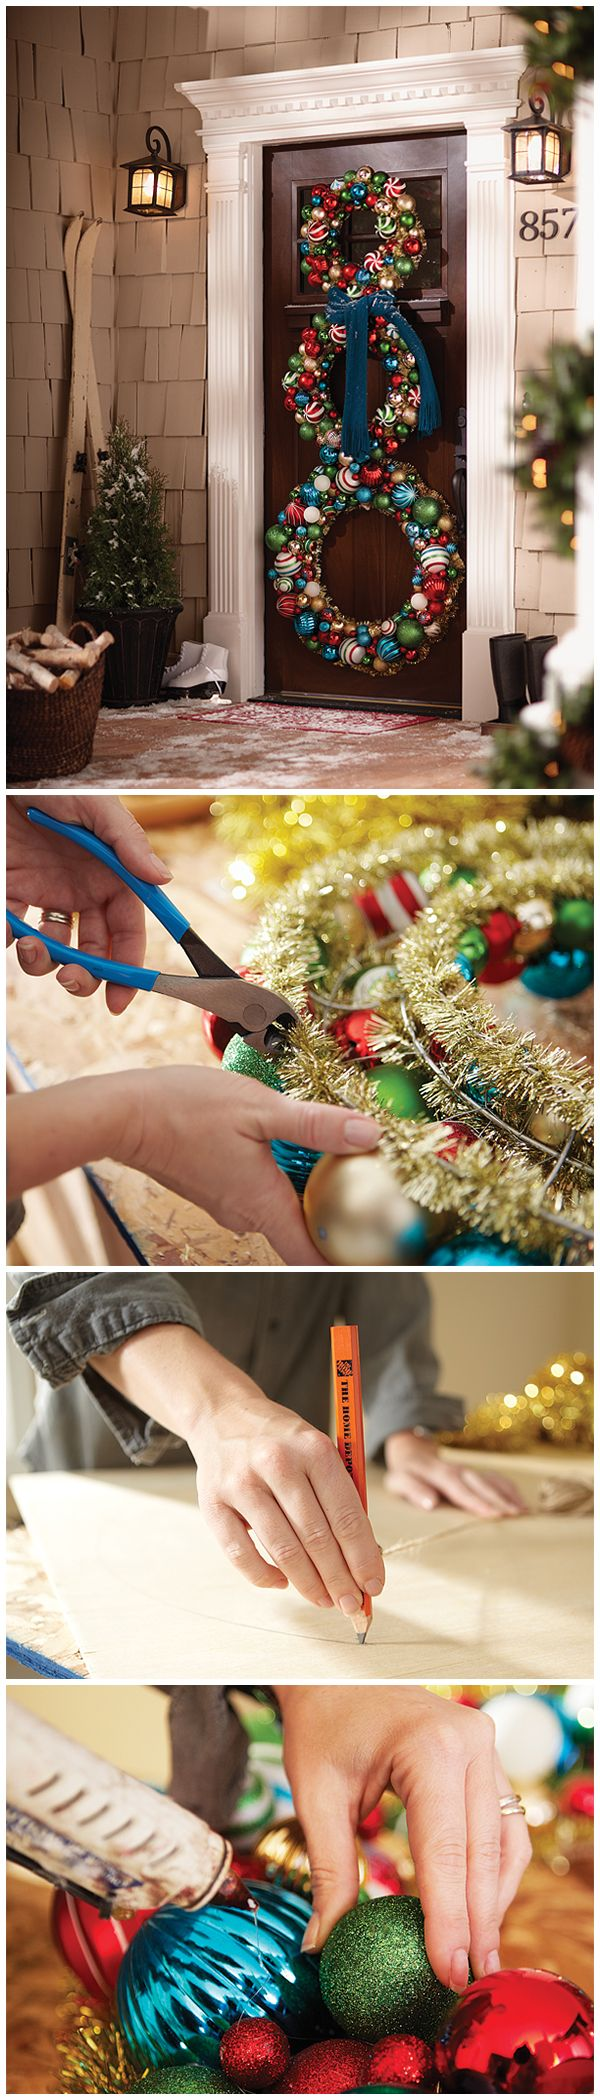 Welcome holiday guests with an inviting and festive entryway that's guaranteed to make a big impression! Learn how to make this DIY snowman wreath for your home with step-by-step instructions found here.